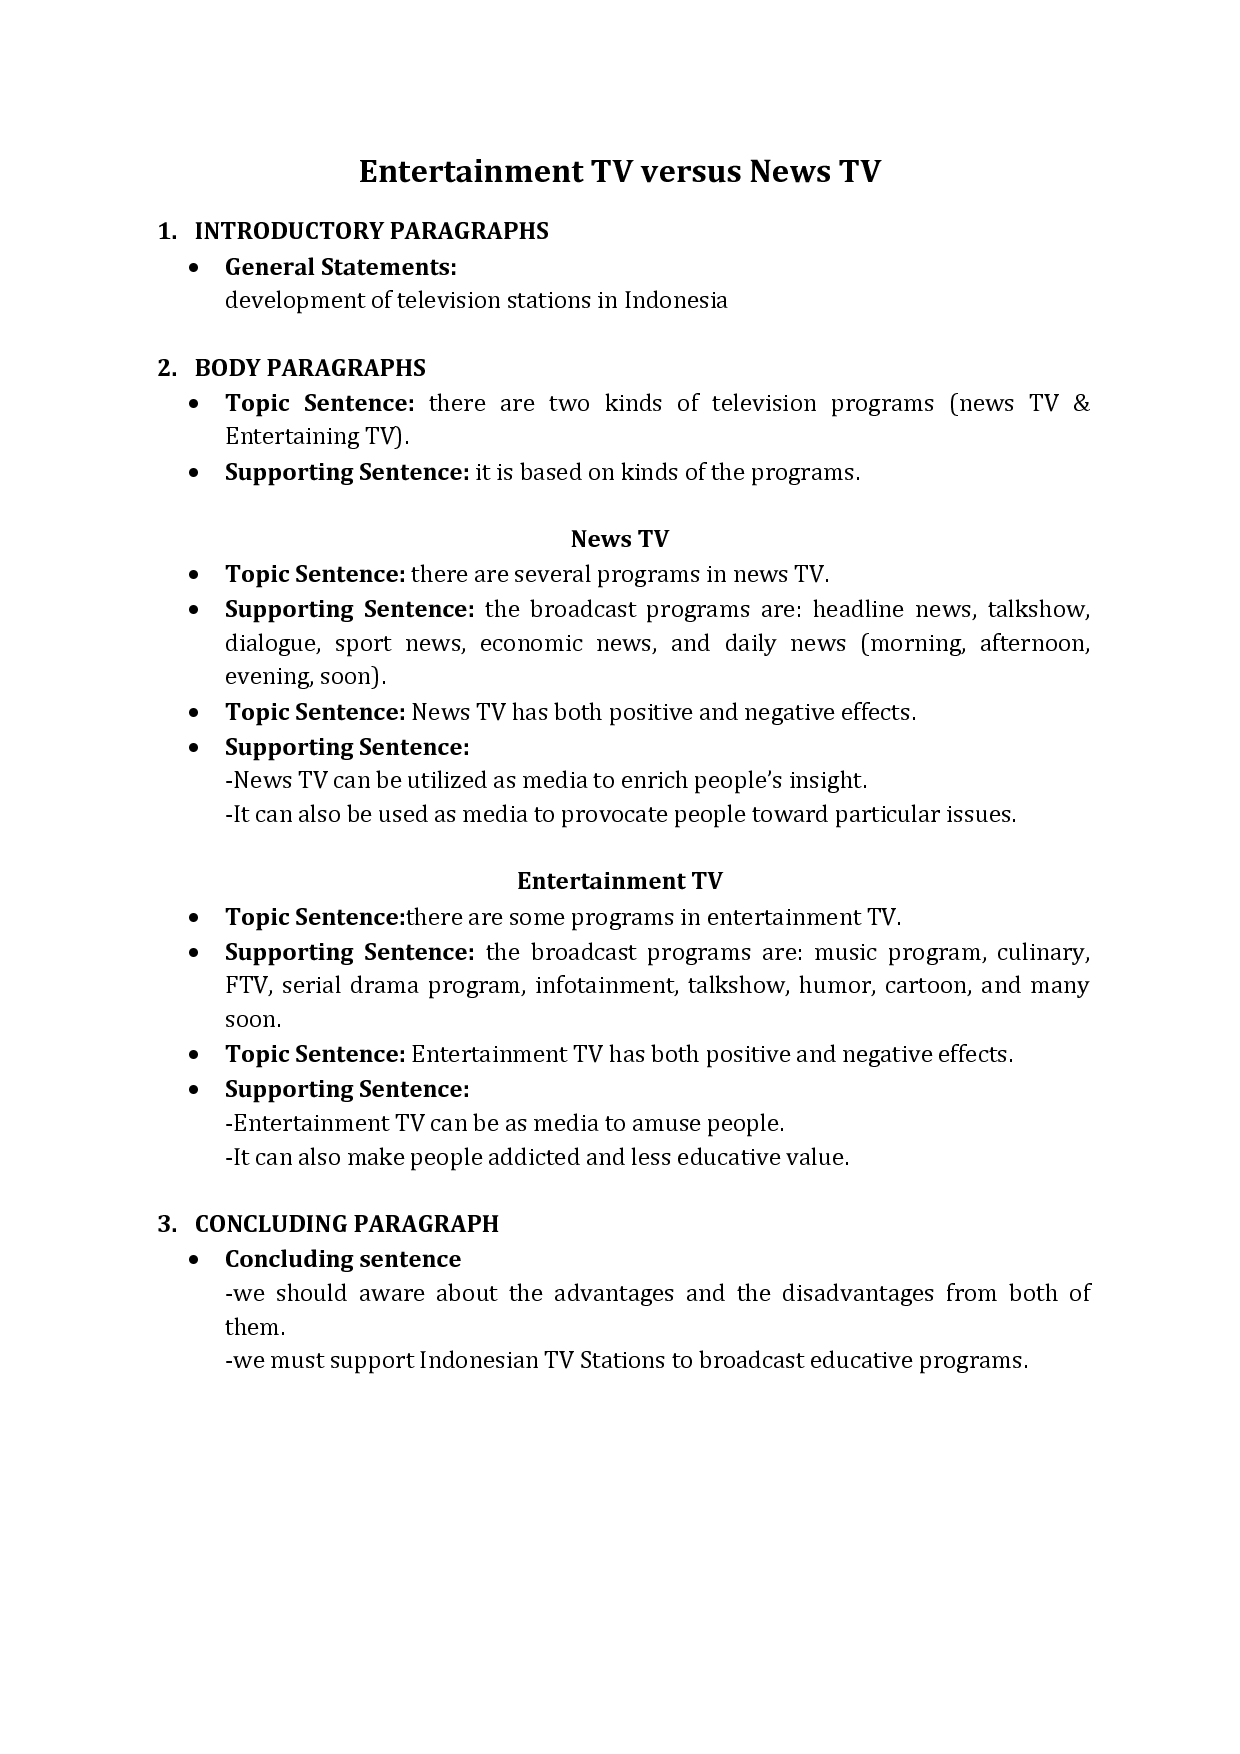 008 College Essay Outline Examples And Search On Pinterest Inmat Example How To Do An Astounding For A Simple Mla Format Sample Full